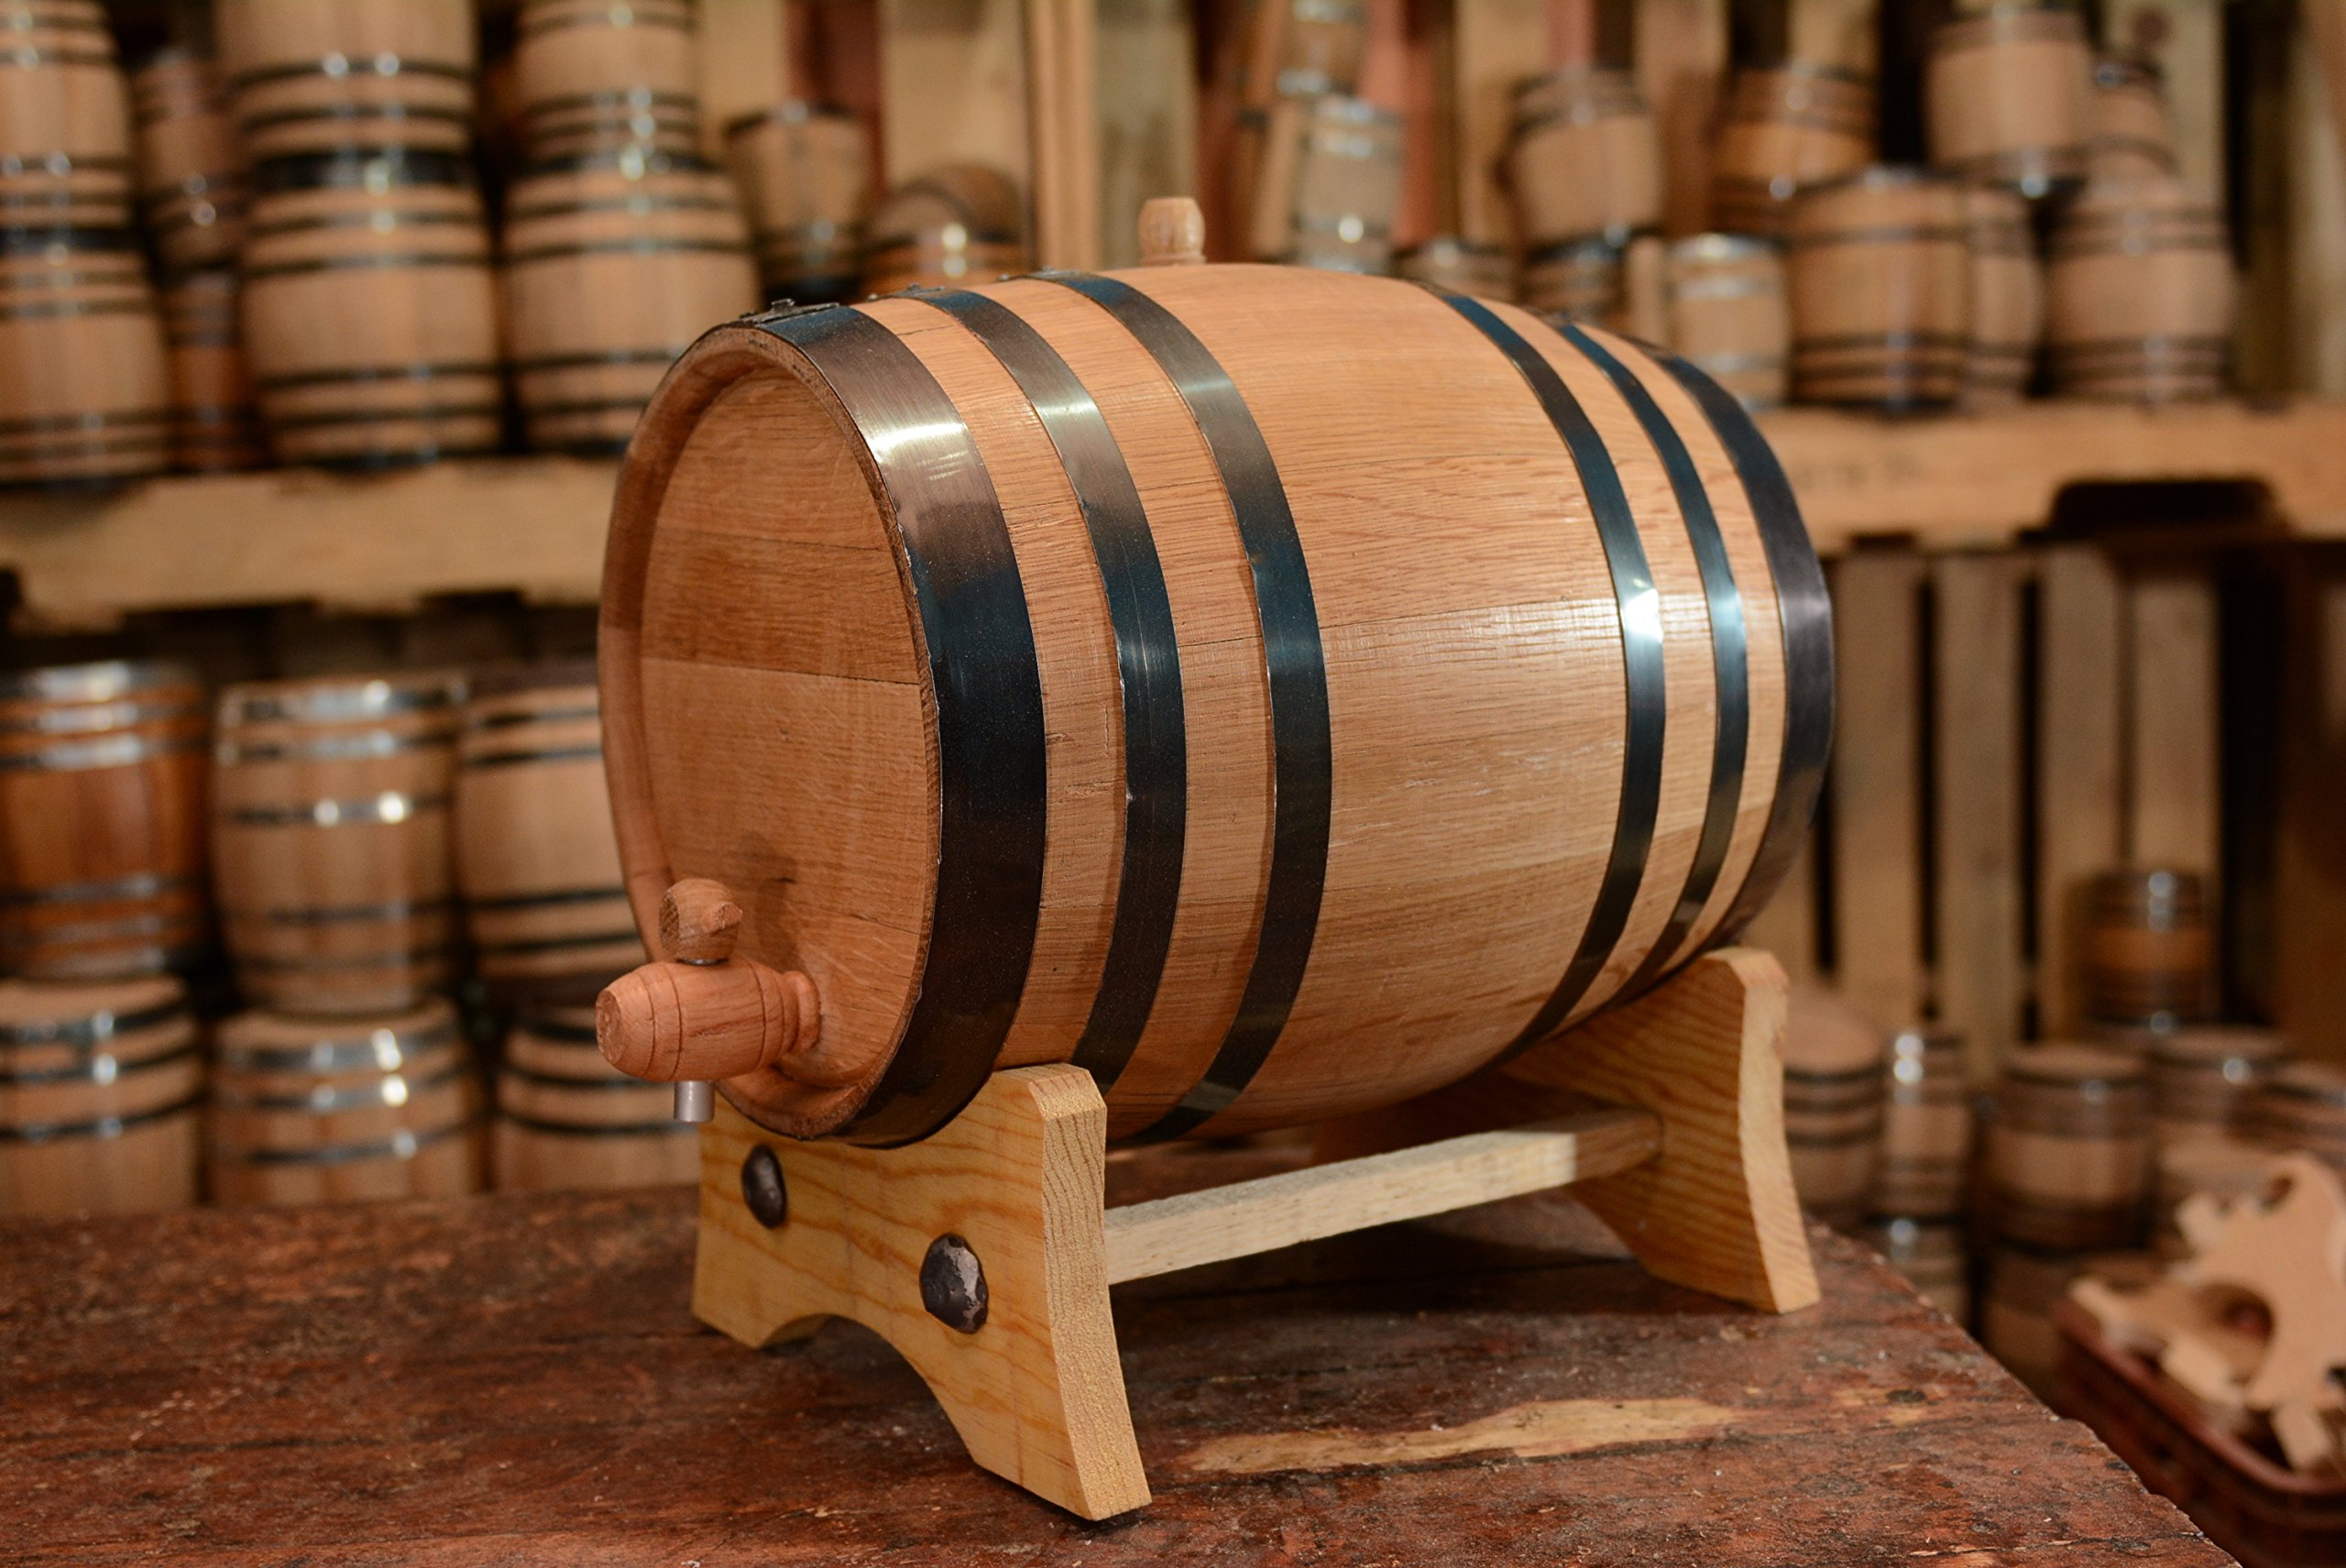 20-Liter American White Oak Aging Barrel | Age your own Tequila, Whiskey, Rum, Bourbon, Wine